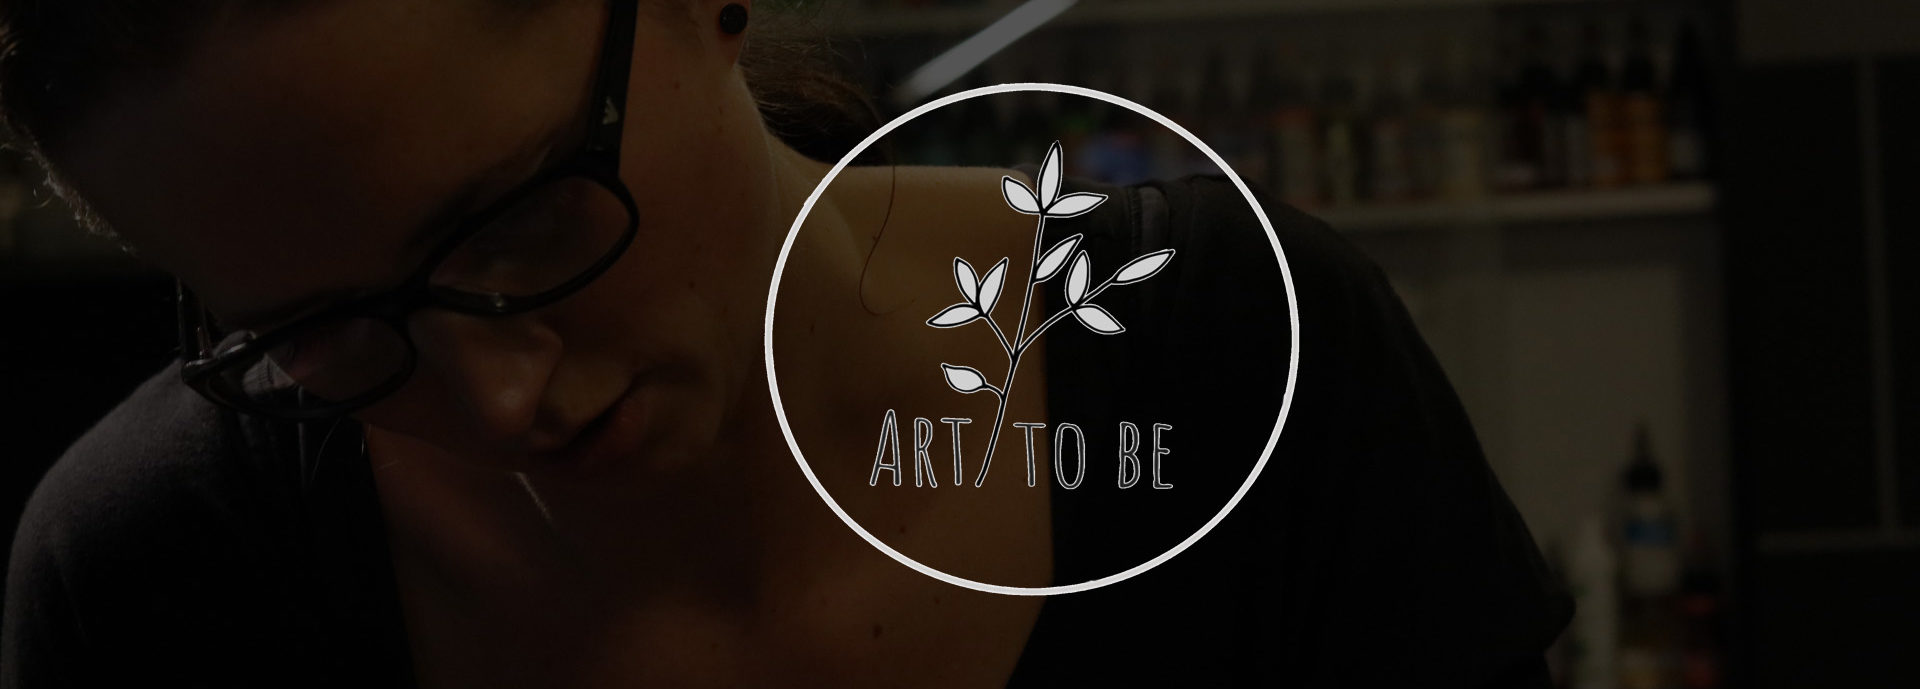 art to be